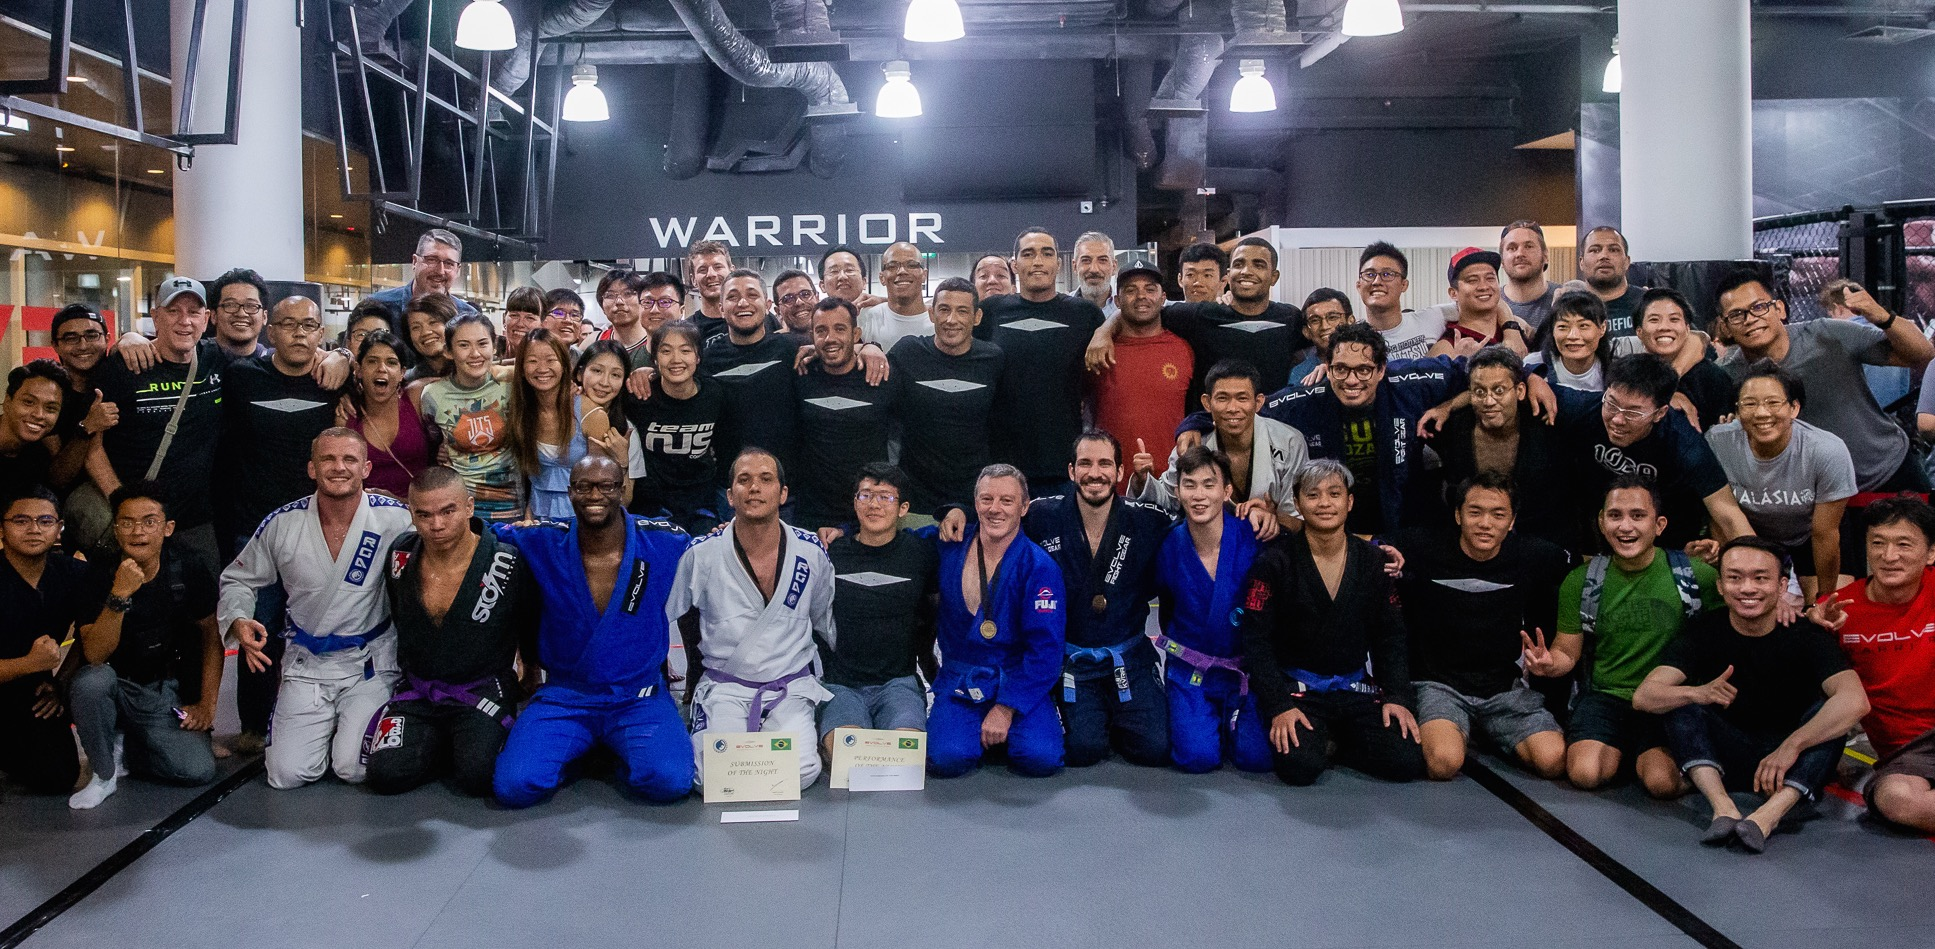 A group of BJJ competitors.